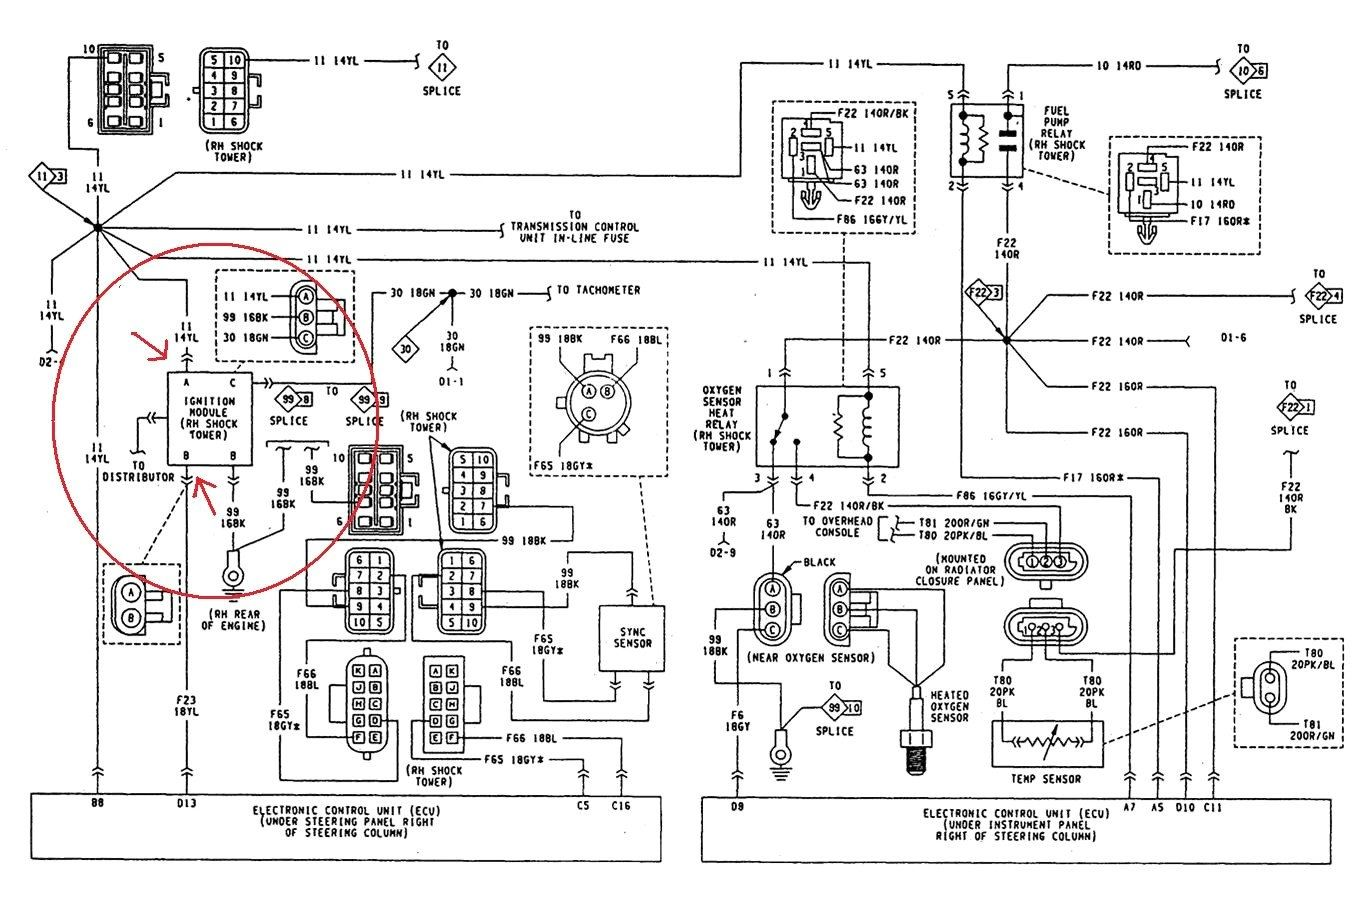 medium resolution of 1990 jeep yj vacuum diagram 1990 jeep wrangler 4 2 vacuum diagram1990 jeep yj vacuum diagram